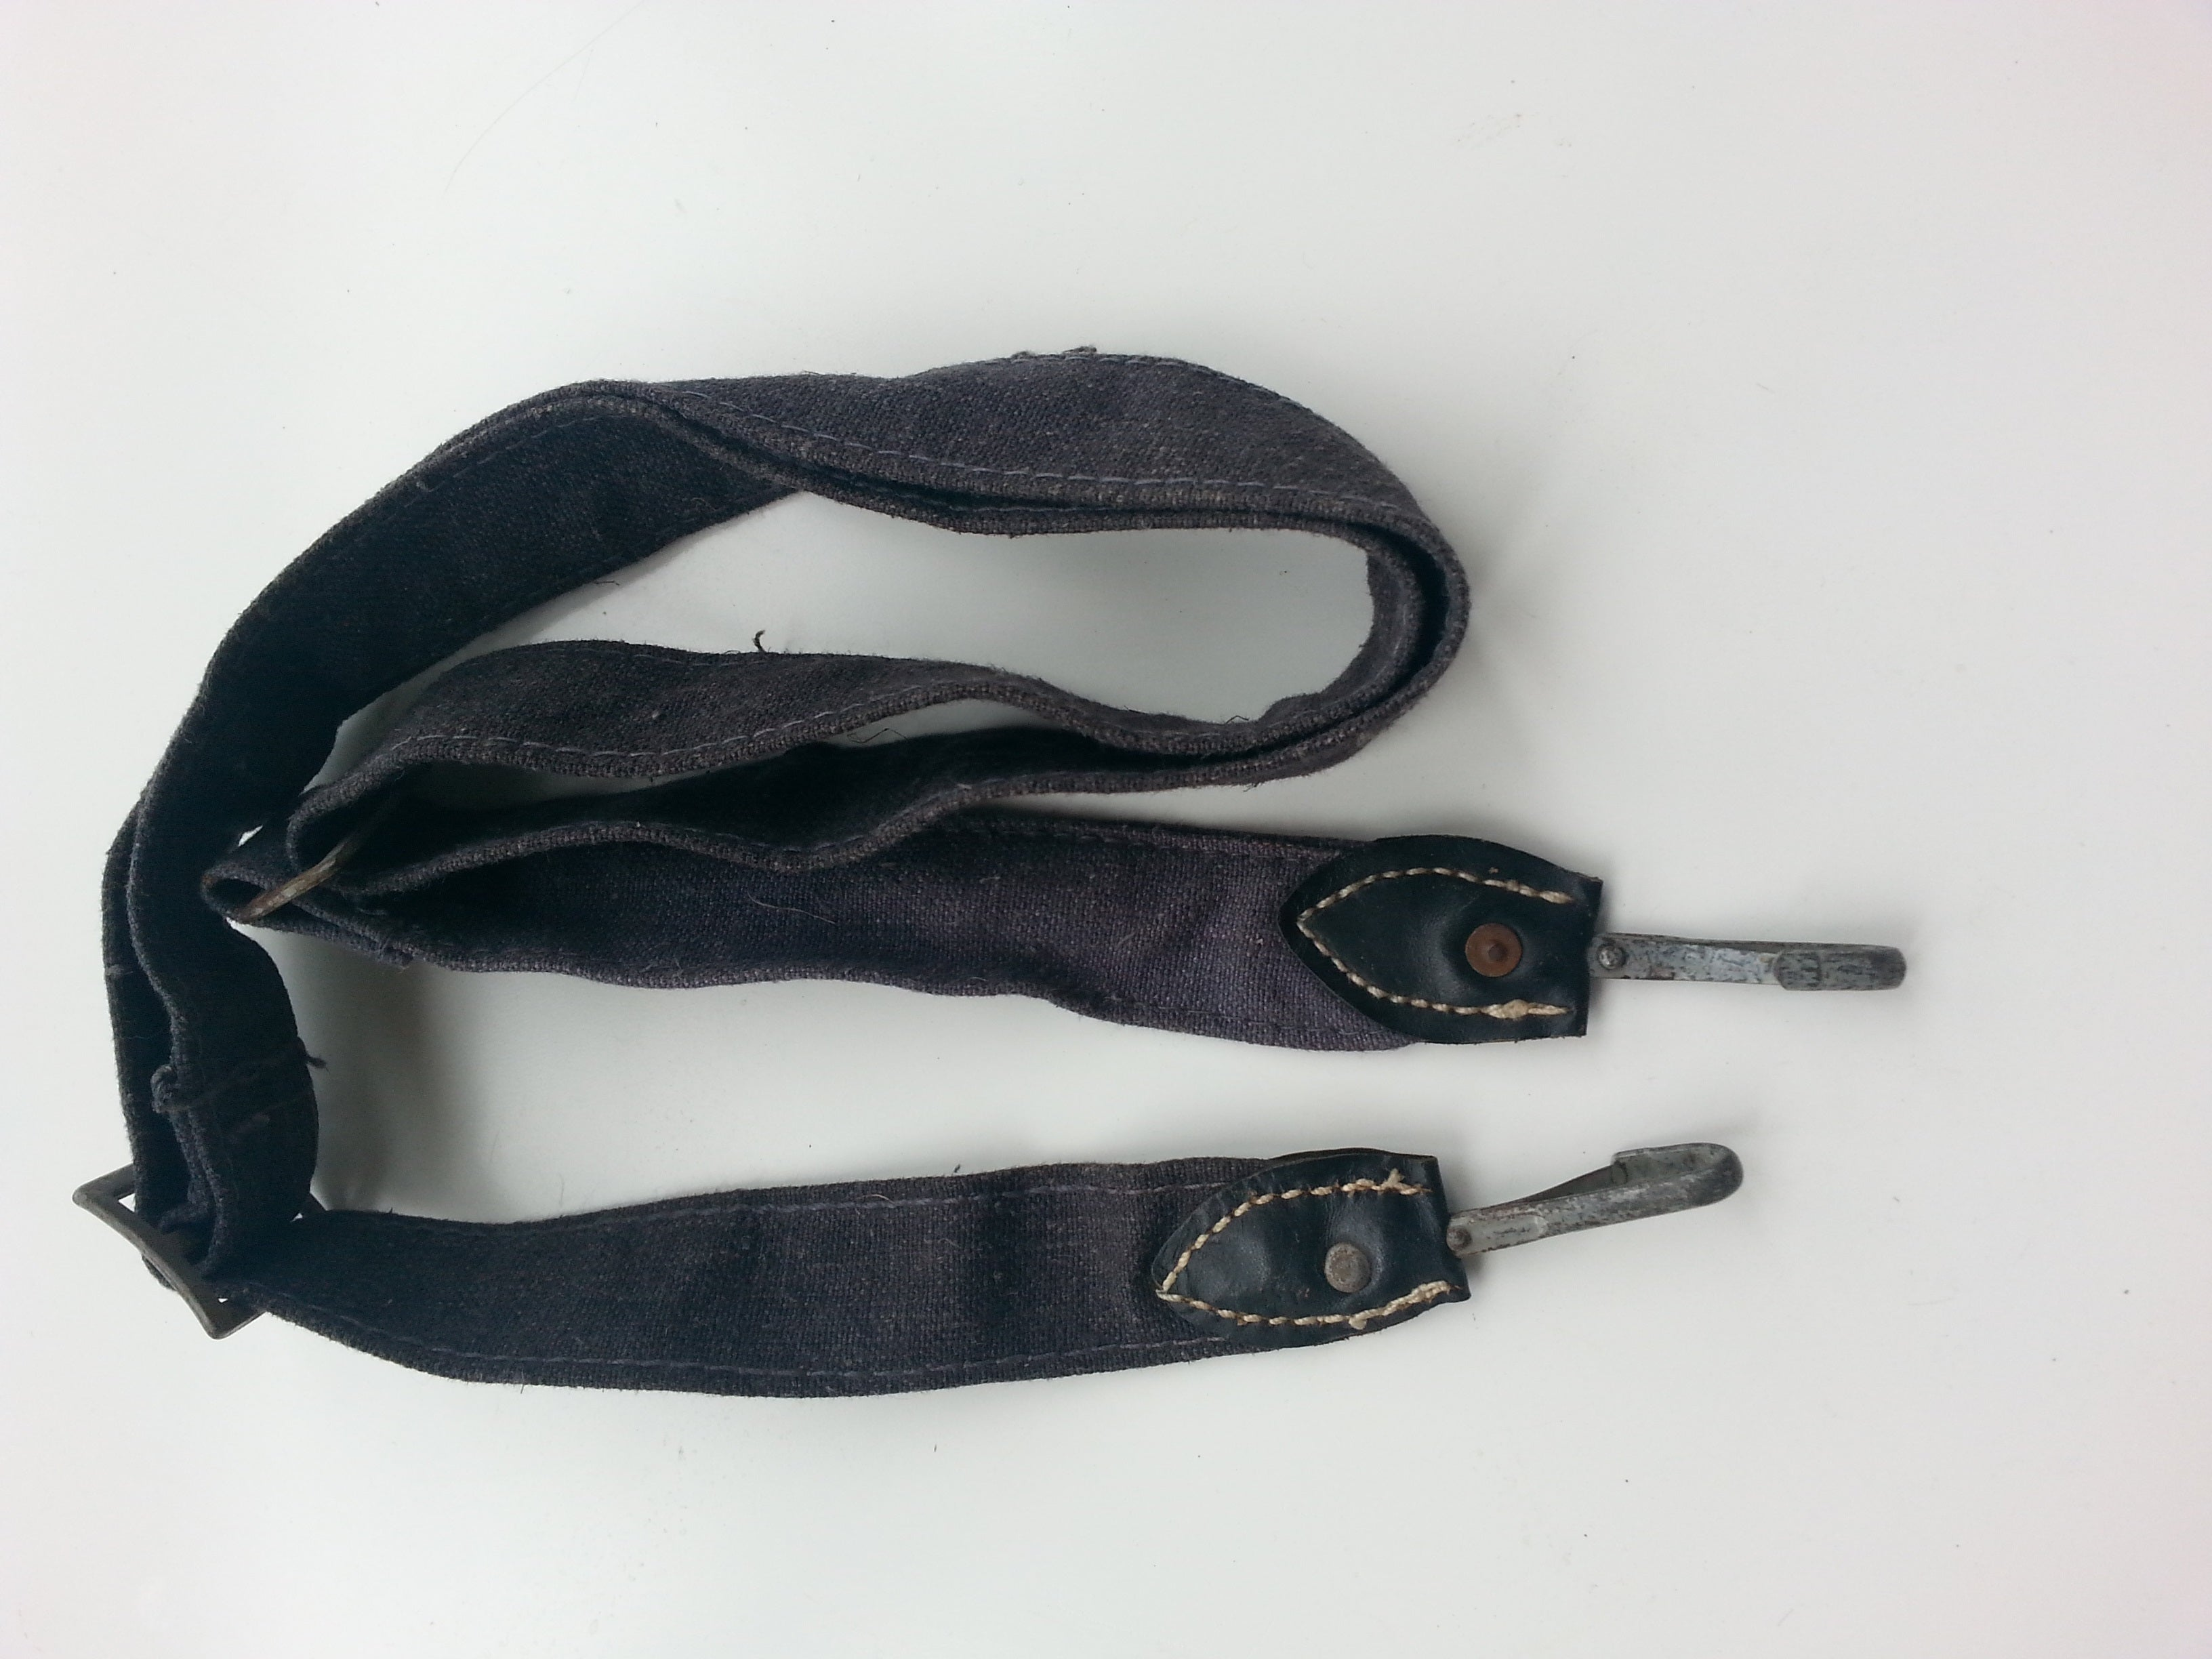 Luftwaffe Breadbag Strap